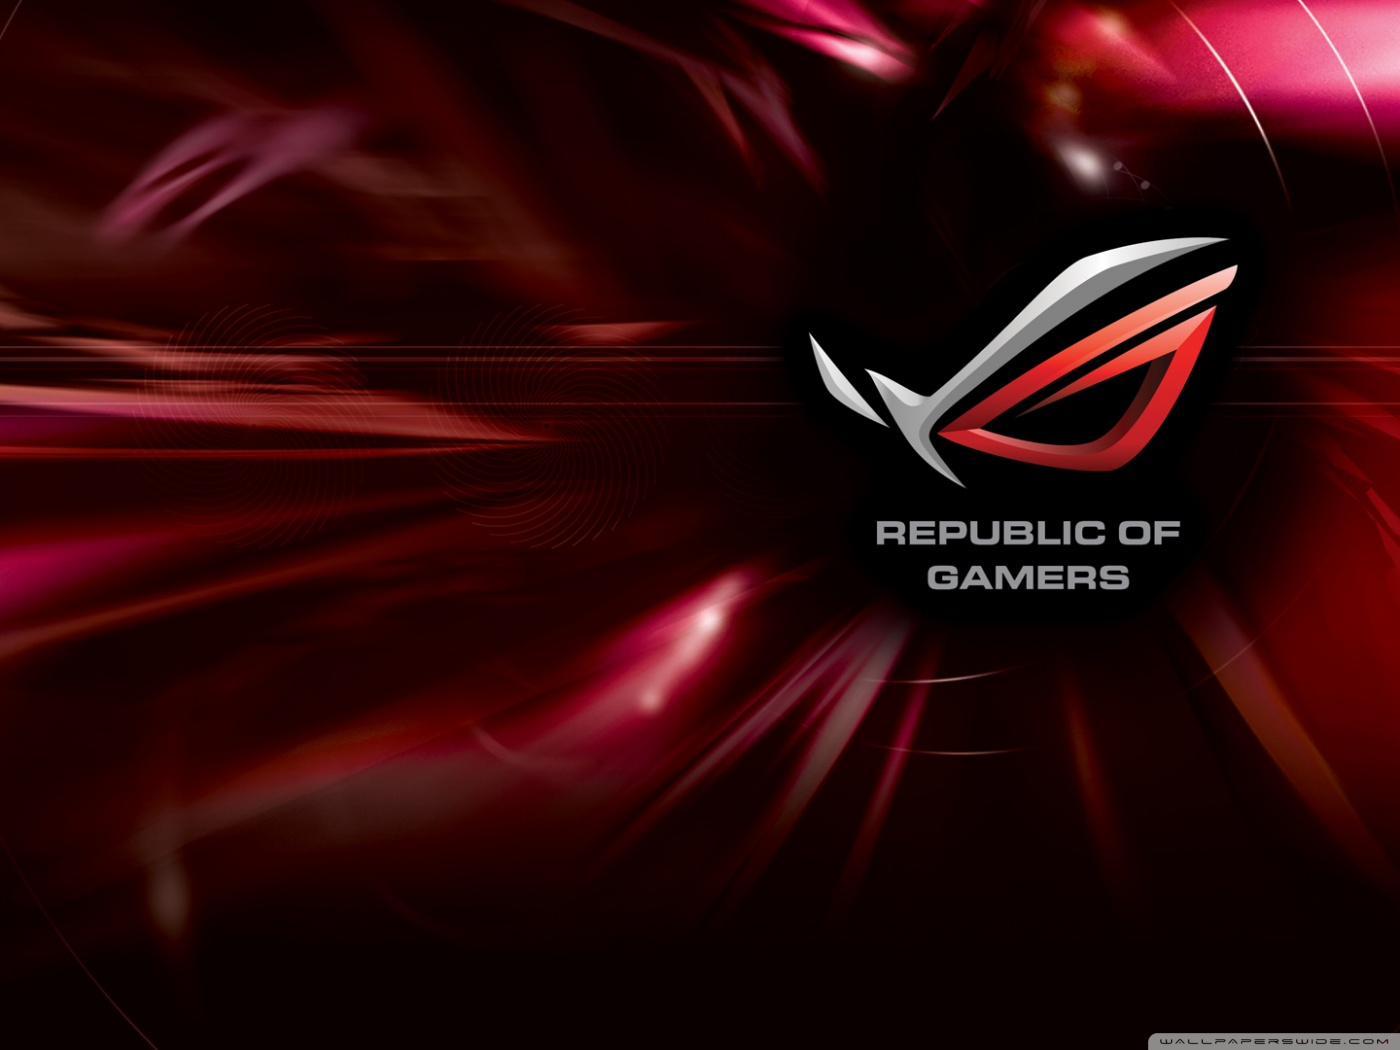 Asus Rog HD desktop wallpaper : Widescreen : High Definition